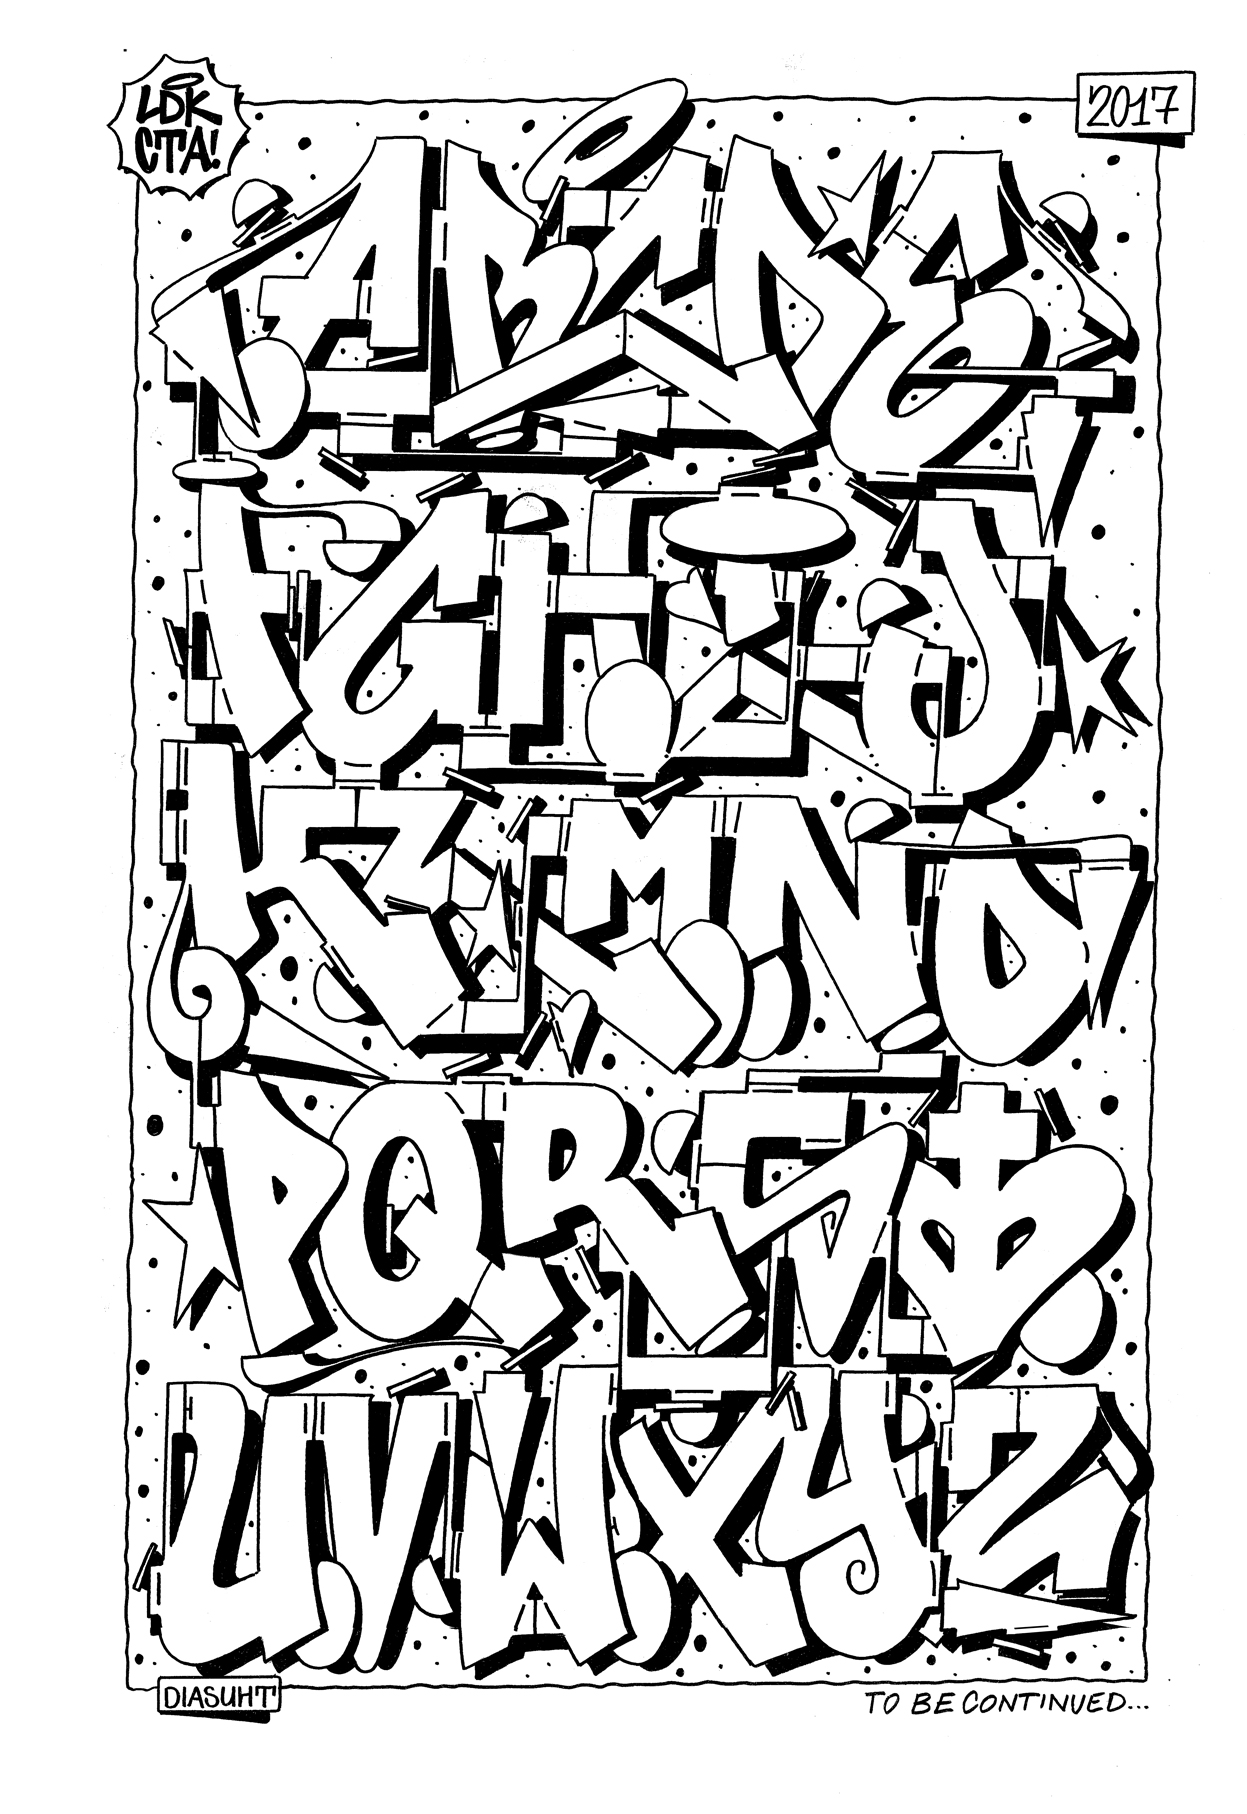 26 letters of style 5 graffiti alphabet bombing science